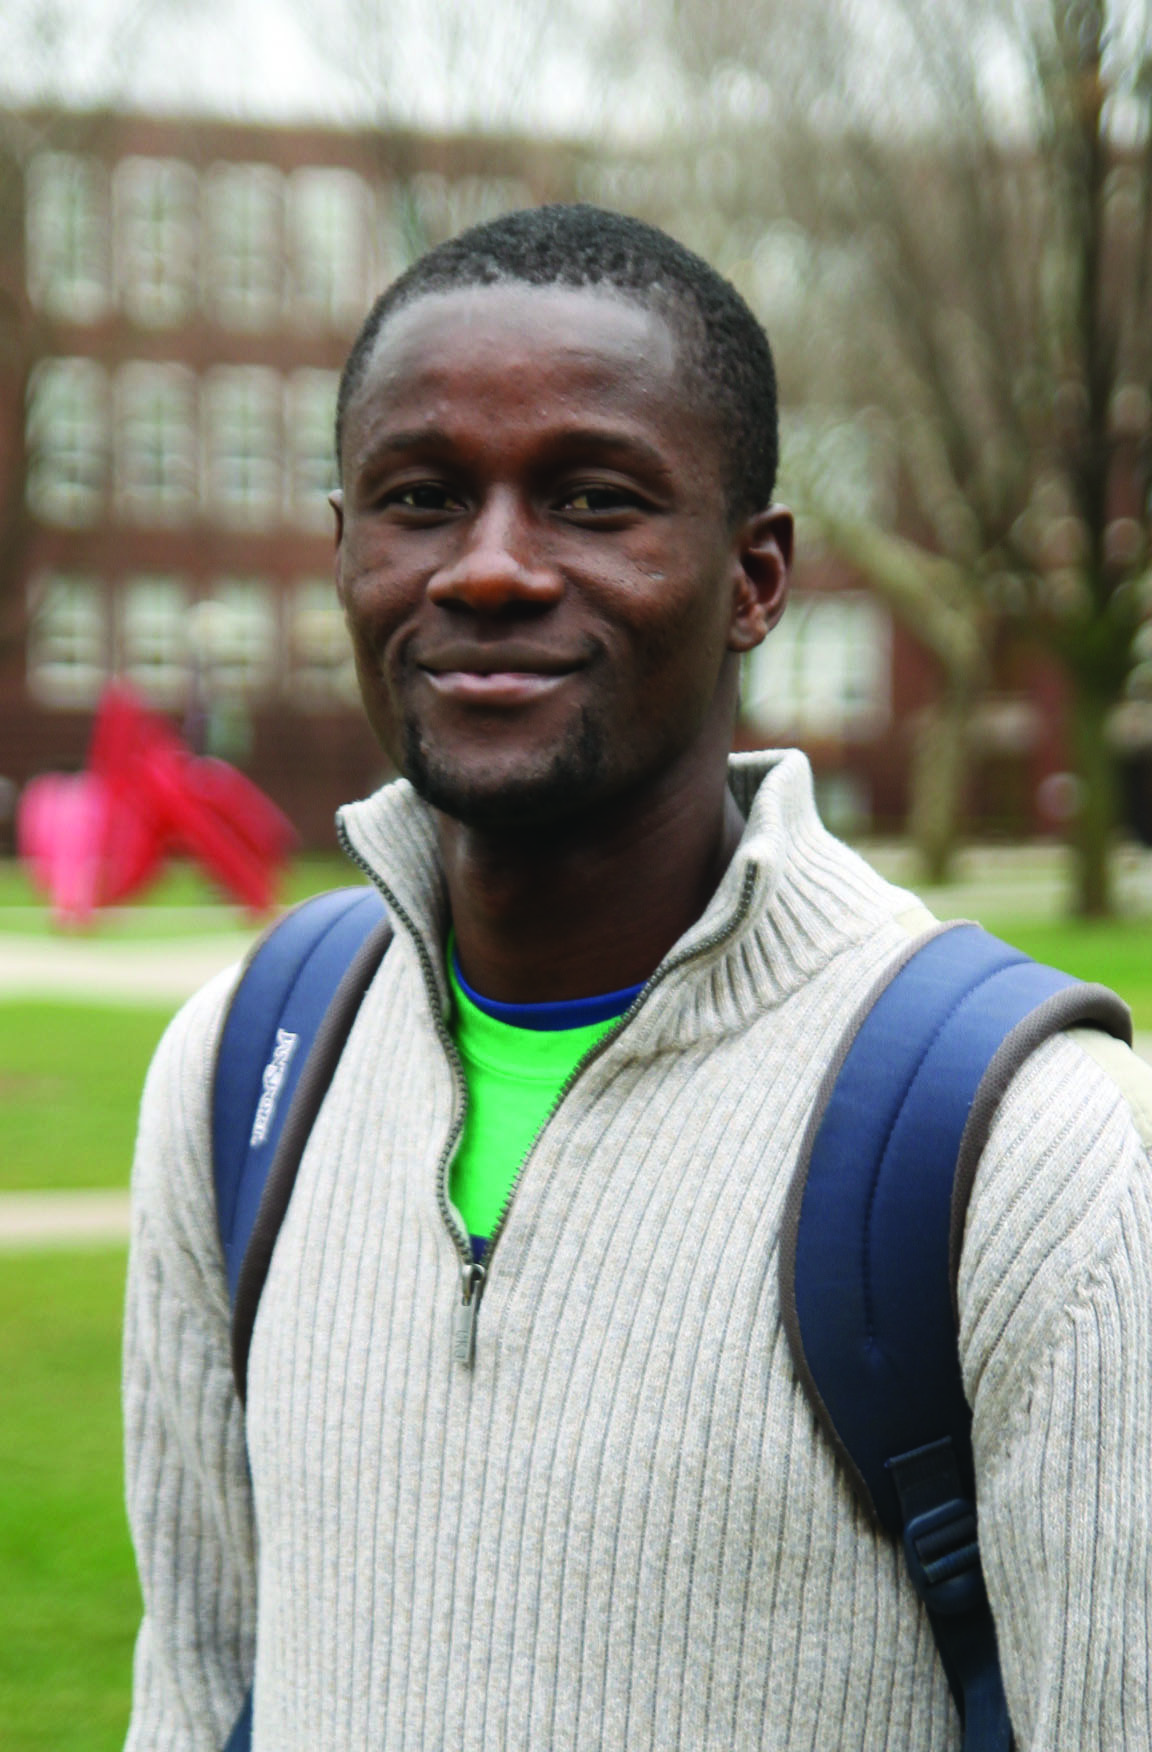 Portrait of Madi Ouedraogo on campus